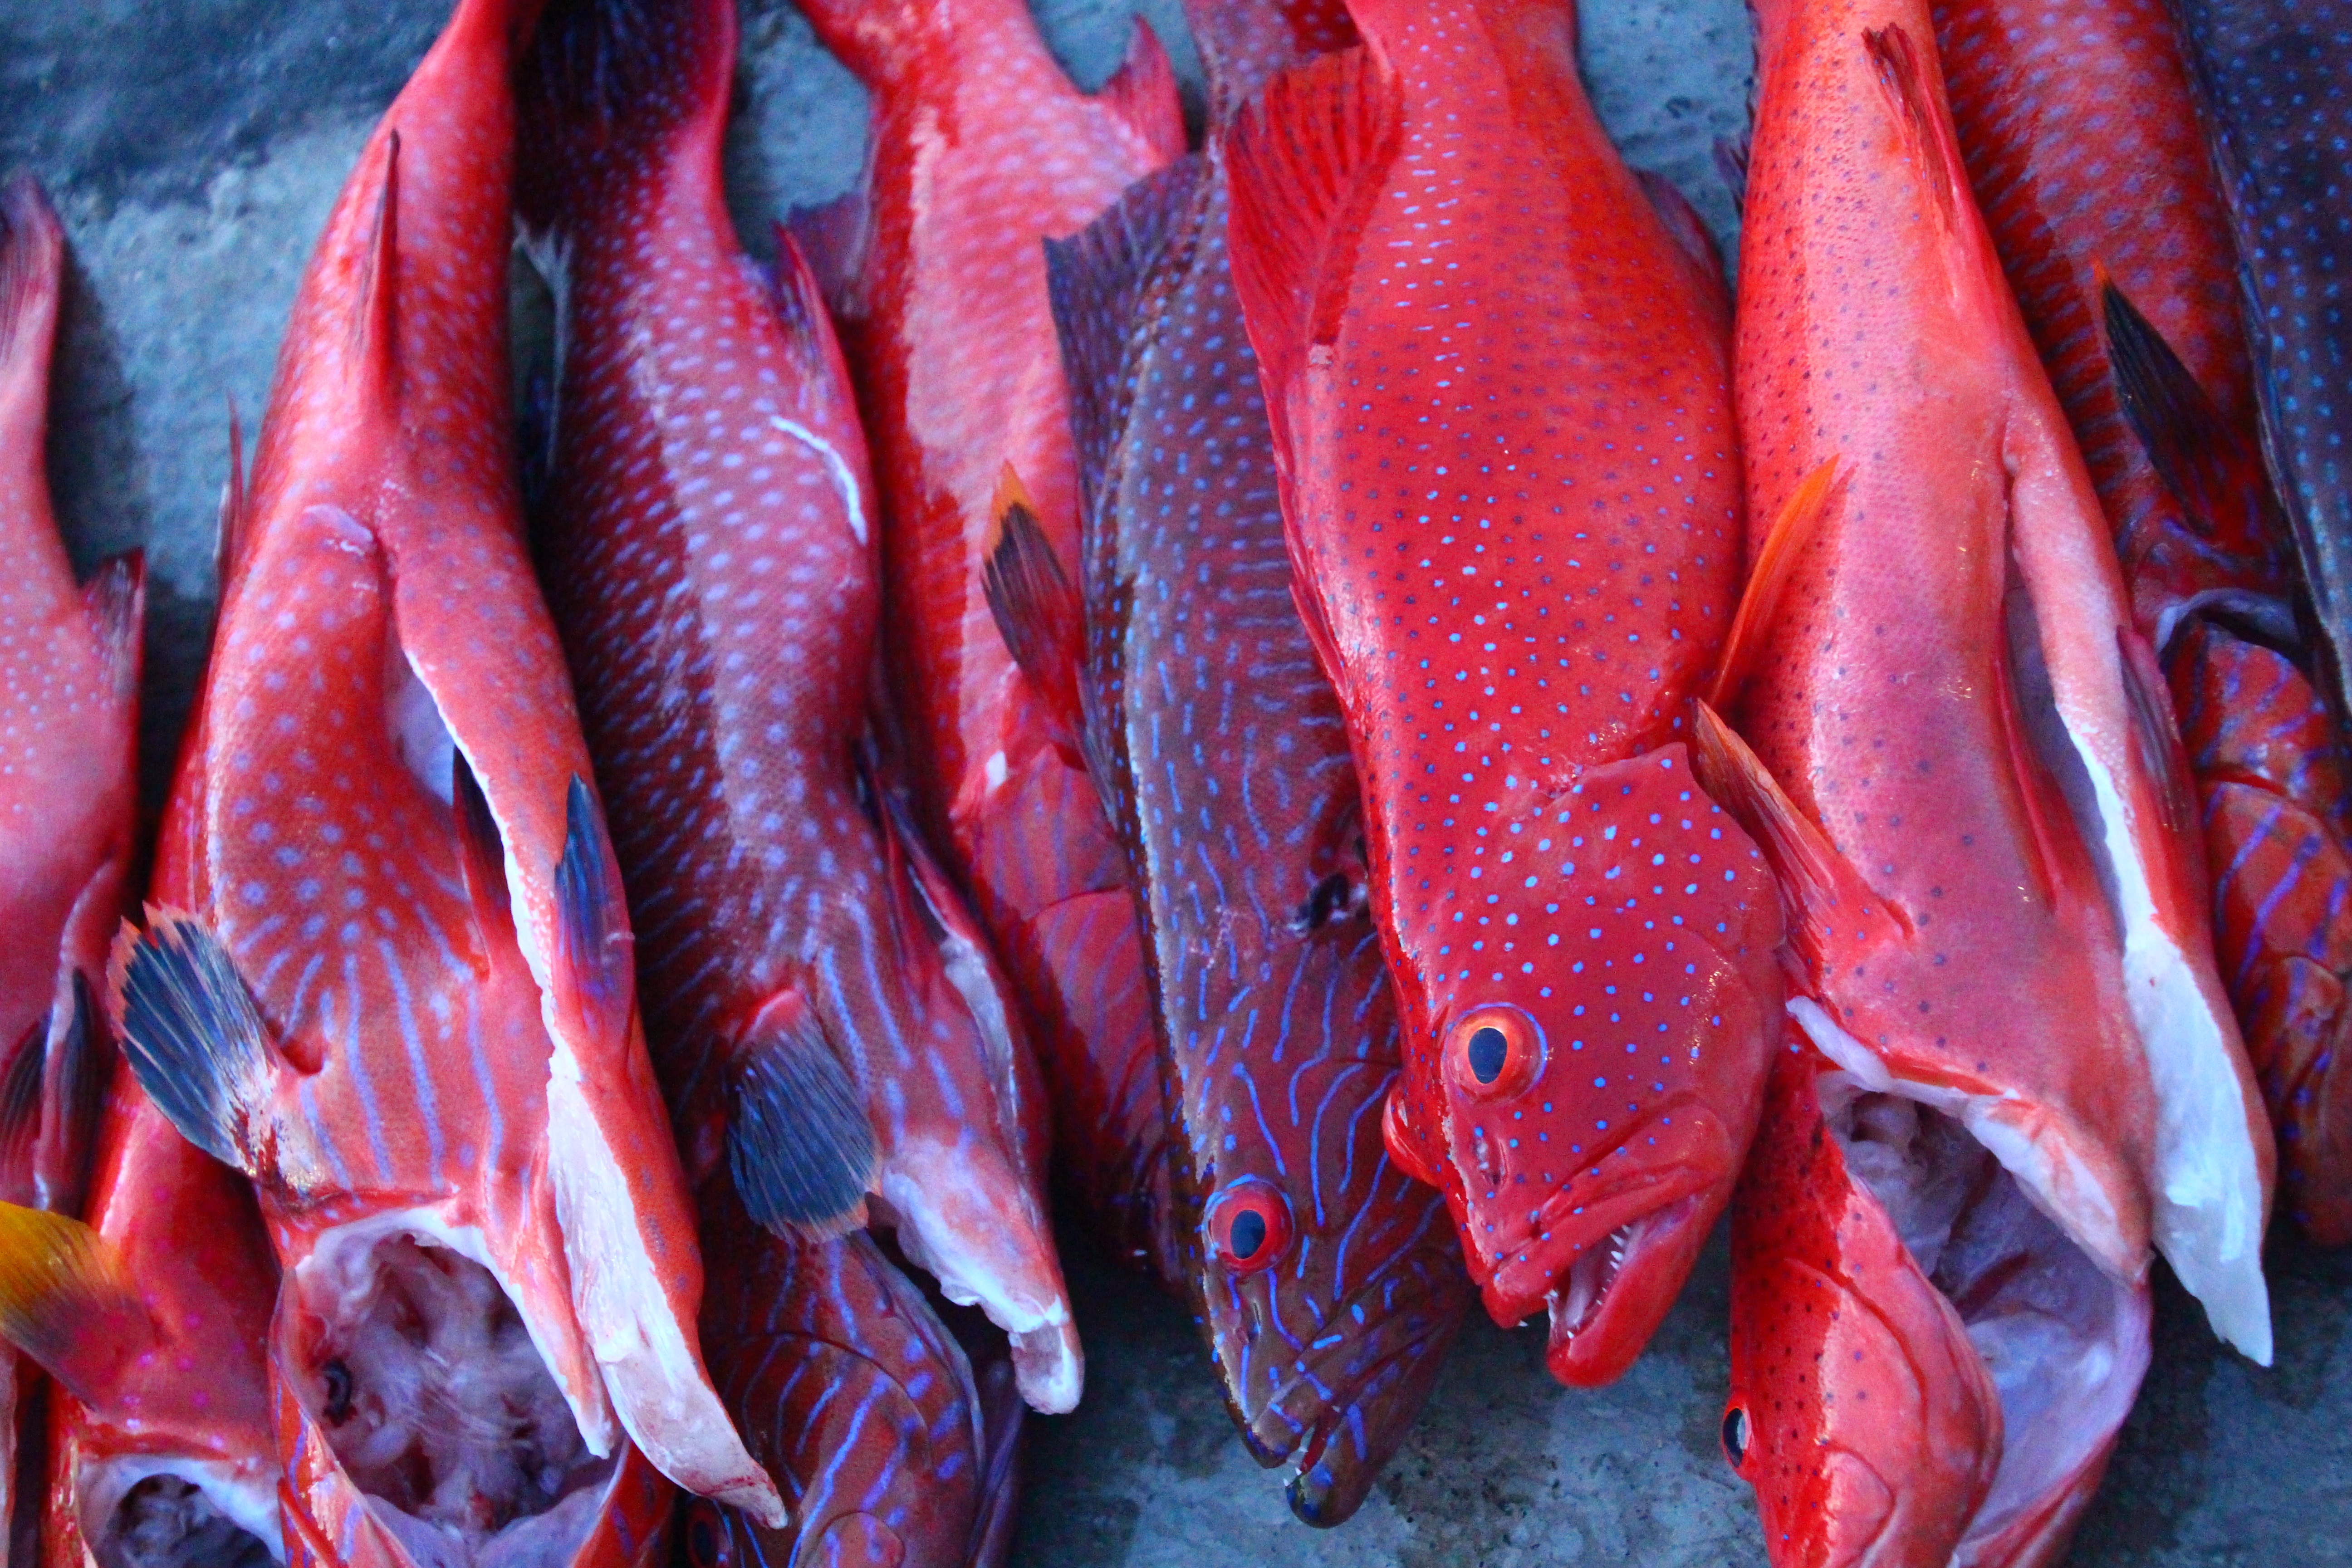 Coral trout caught in the balmy waters of Rabaul